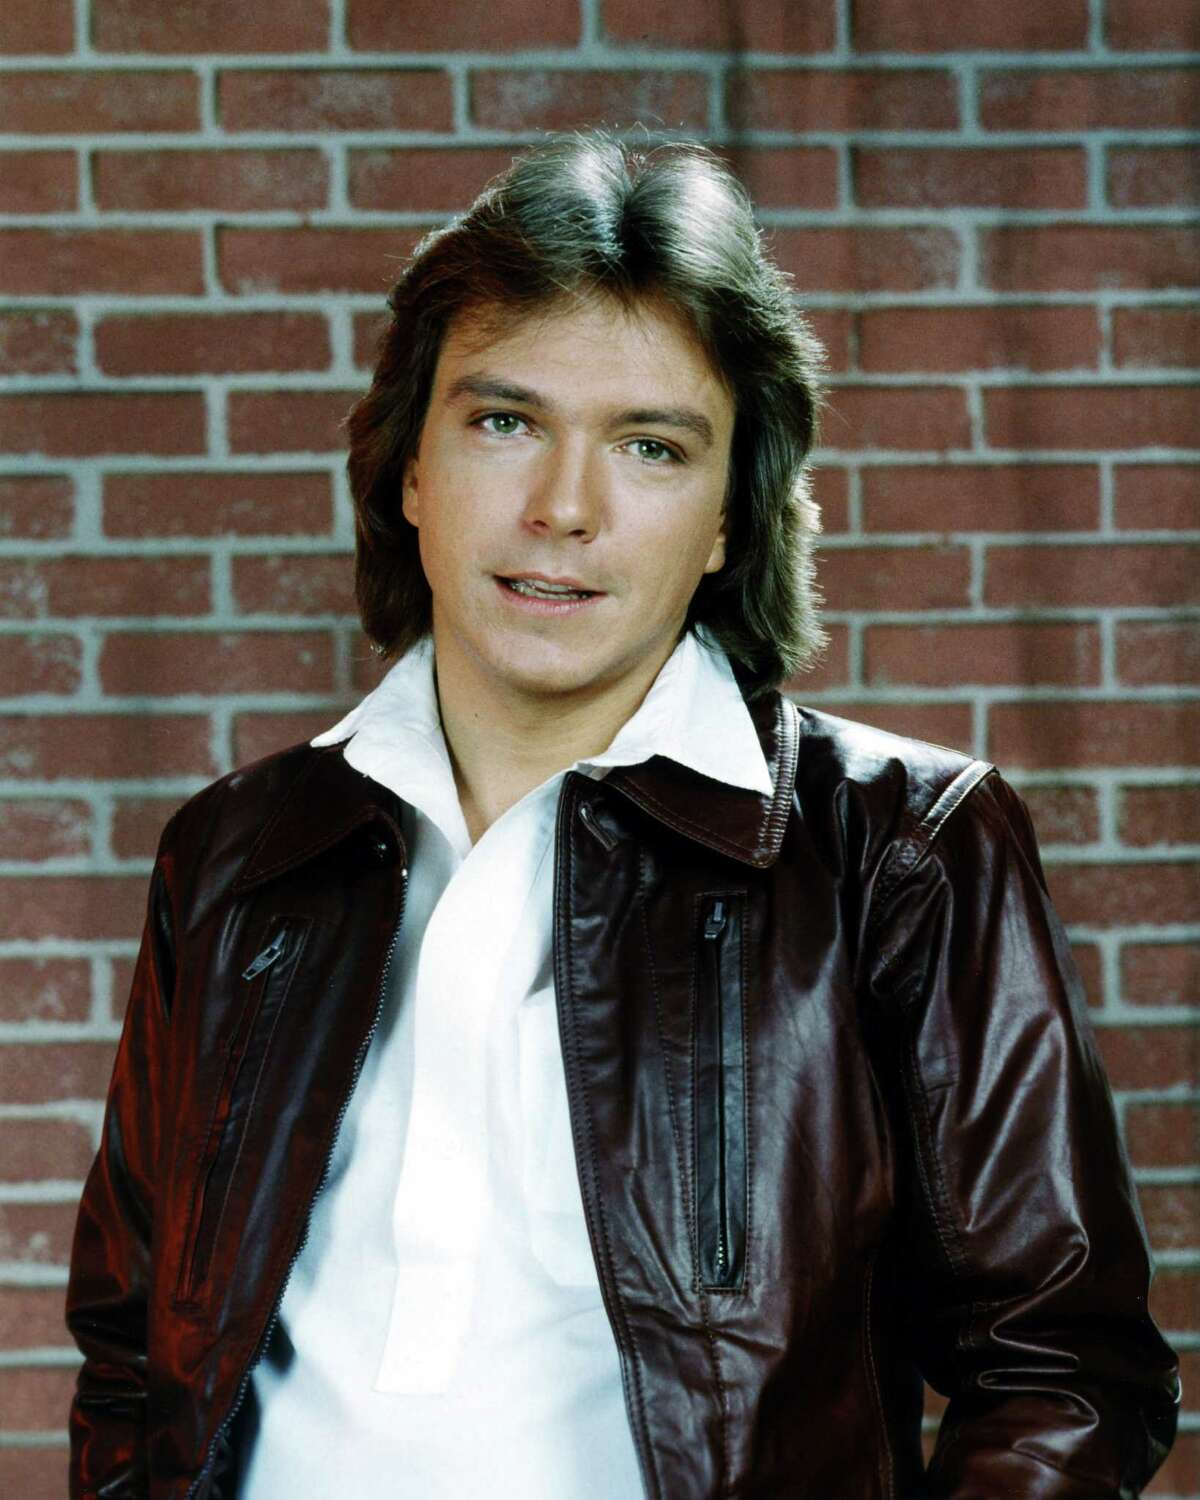 American actor and pop singer David Cassidy, circa 1970.